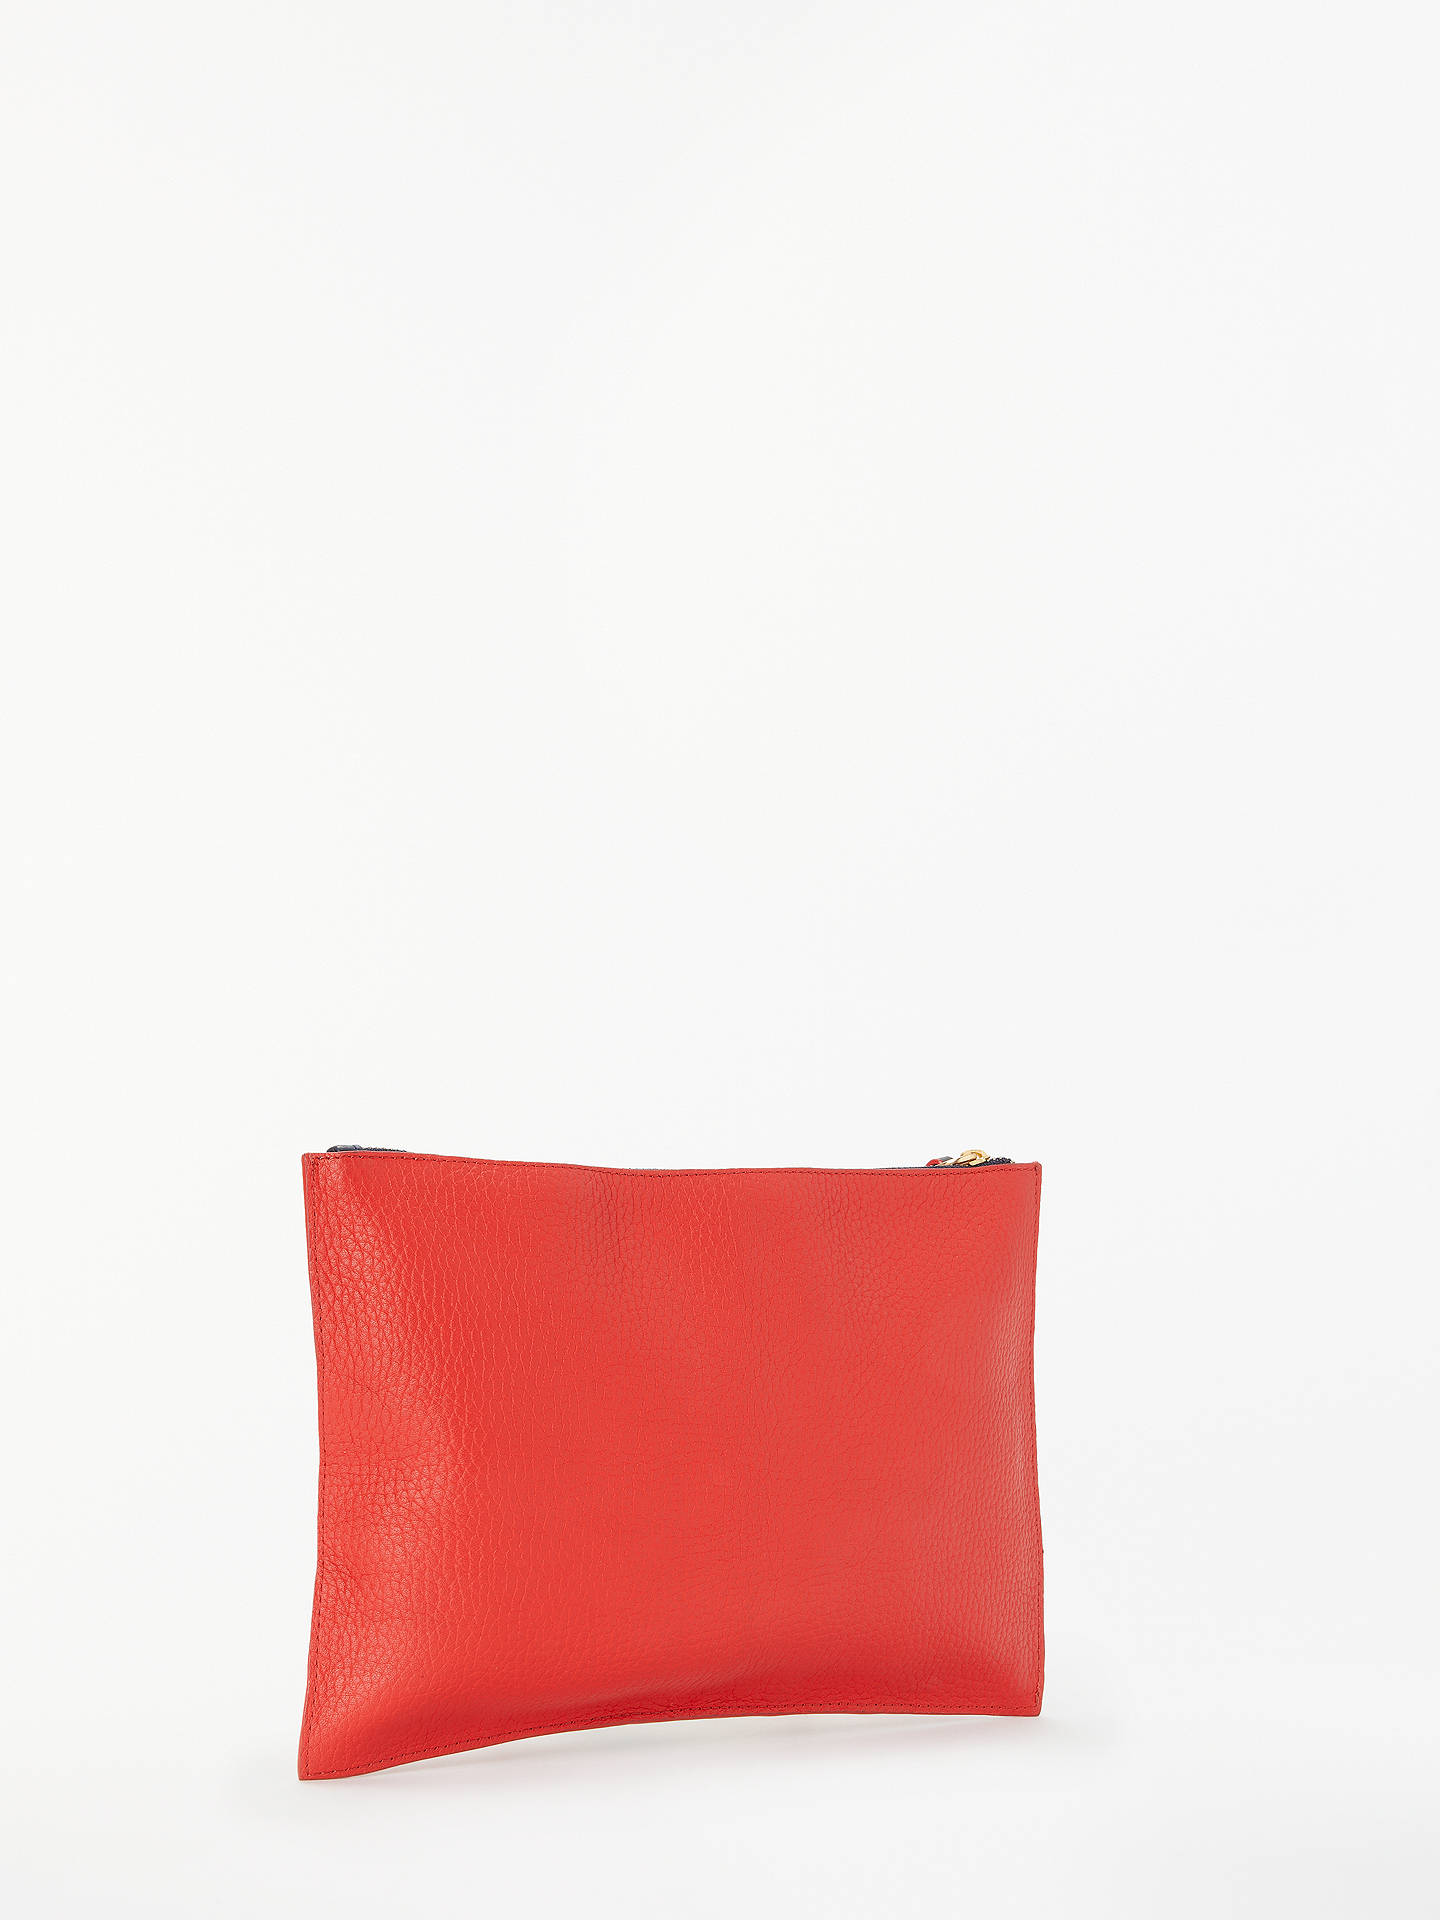 BuyBoden Large Leather Keepsake Pouch, Post Box Red Online at johnlewis.com